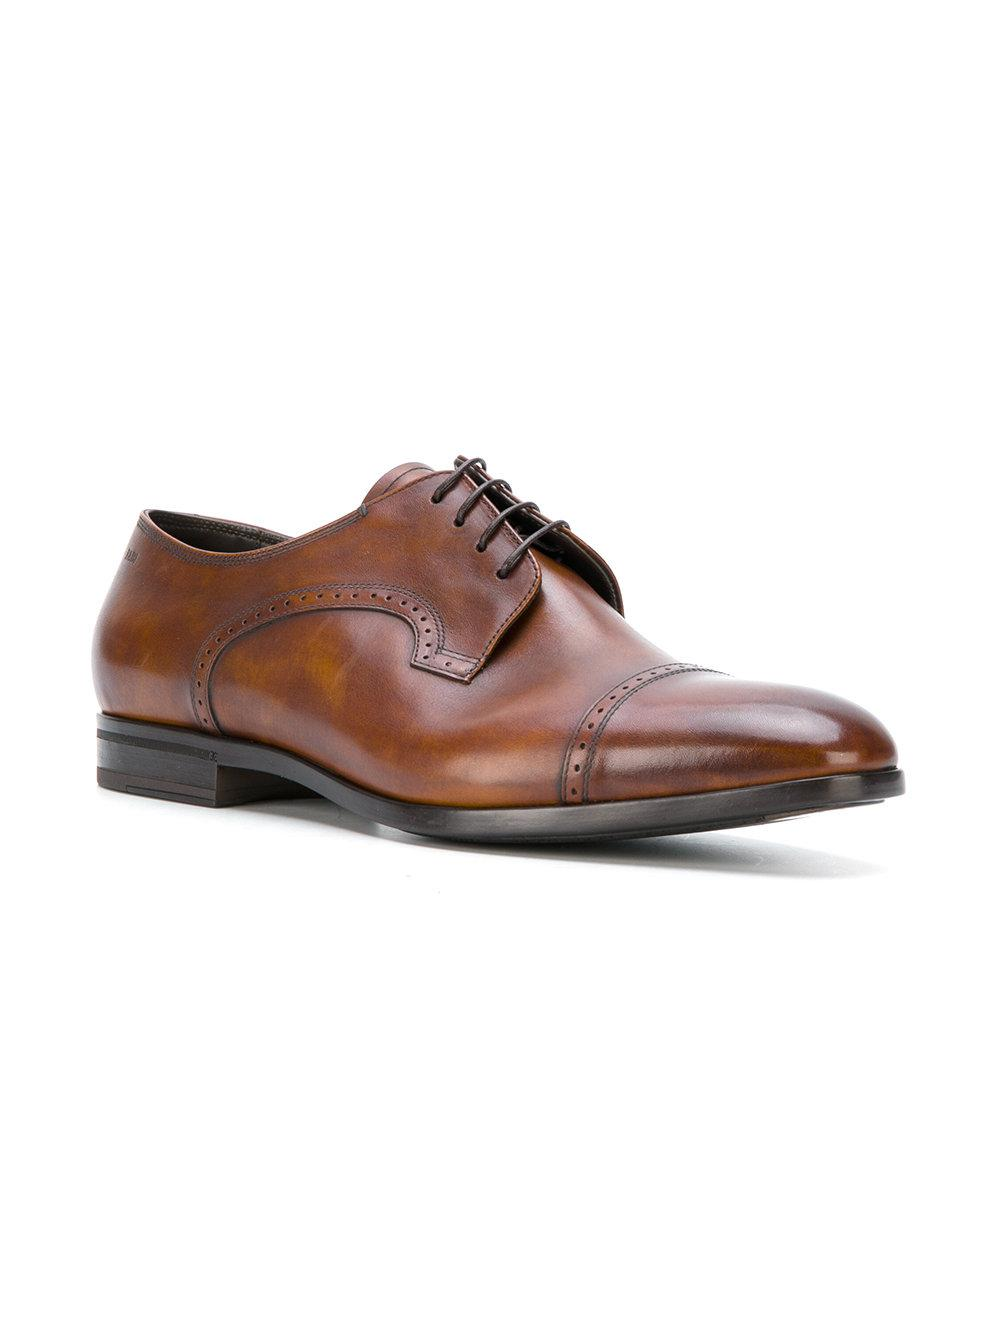 new products 50a7d a7ec2 fabi-Brown-Derby-Shoes.jpeg